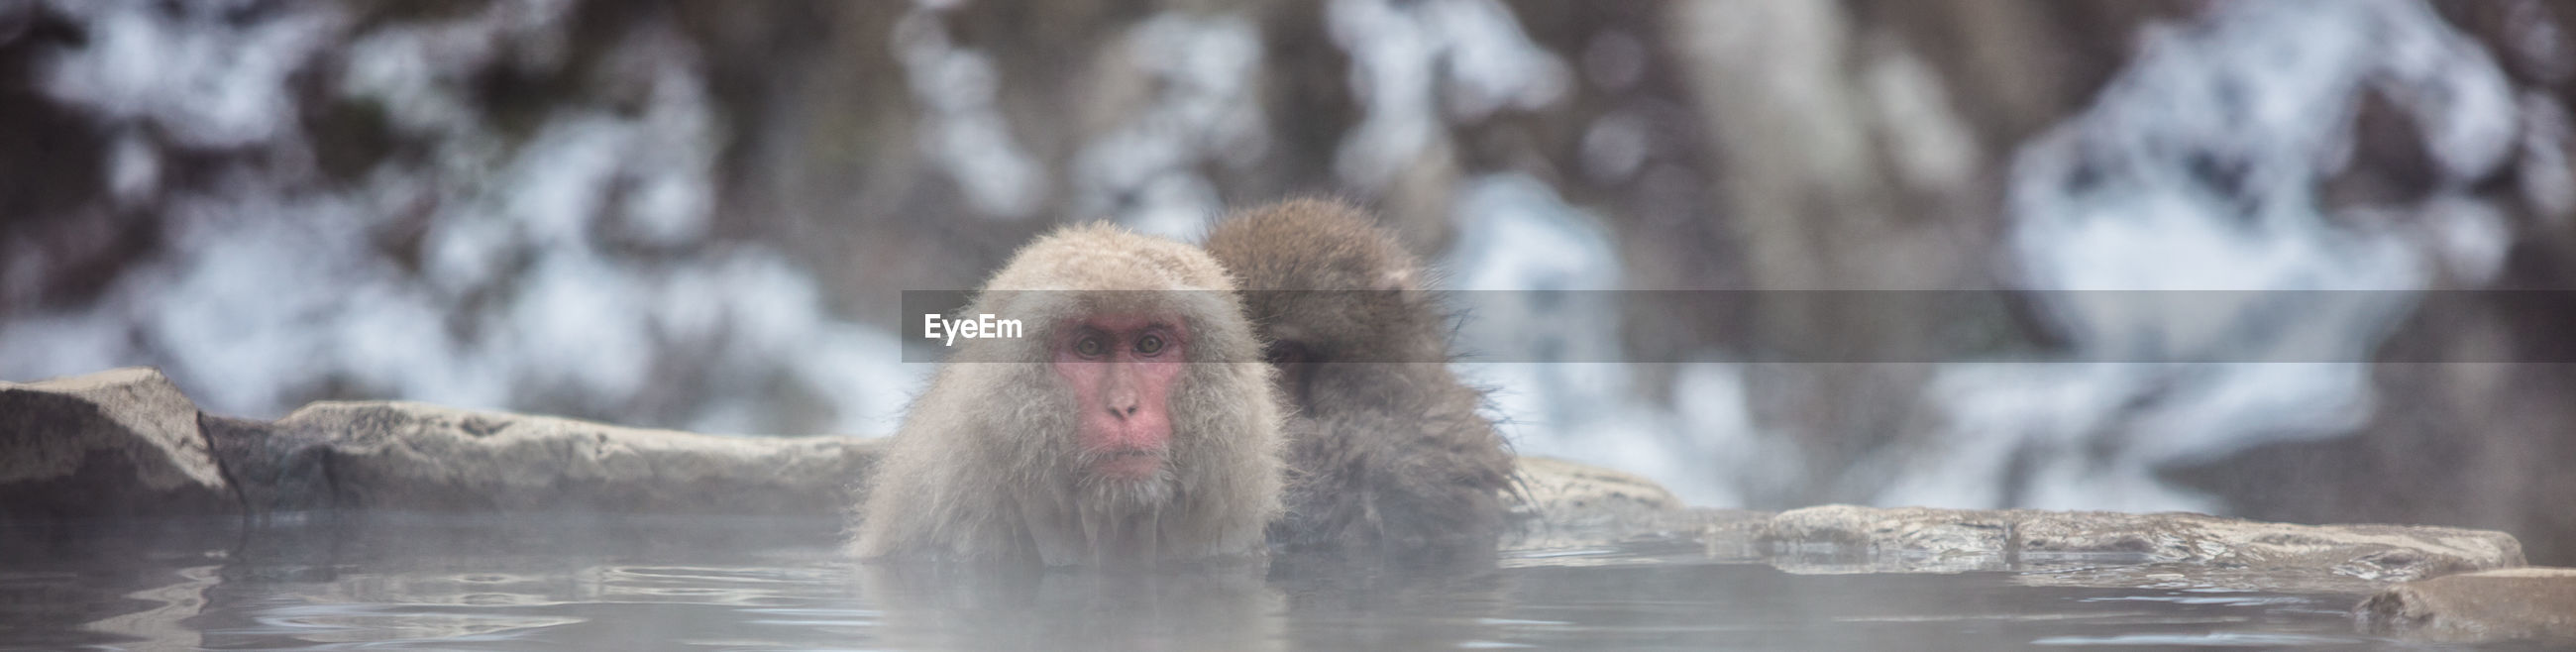 MONKEYS IN A LAKE WITH A SNOW